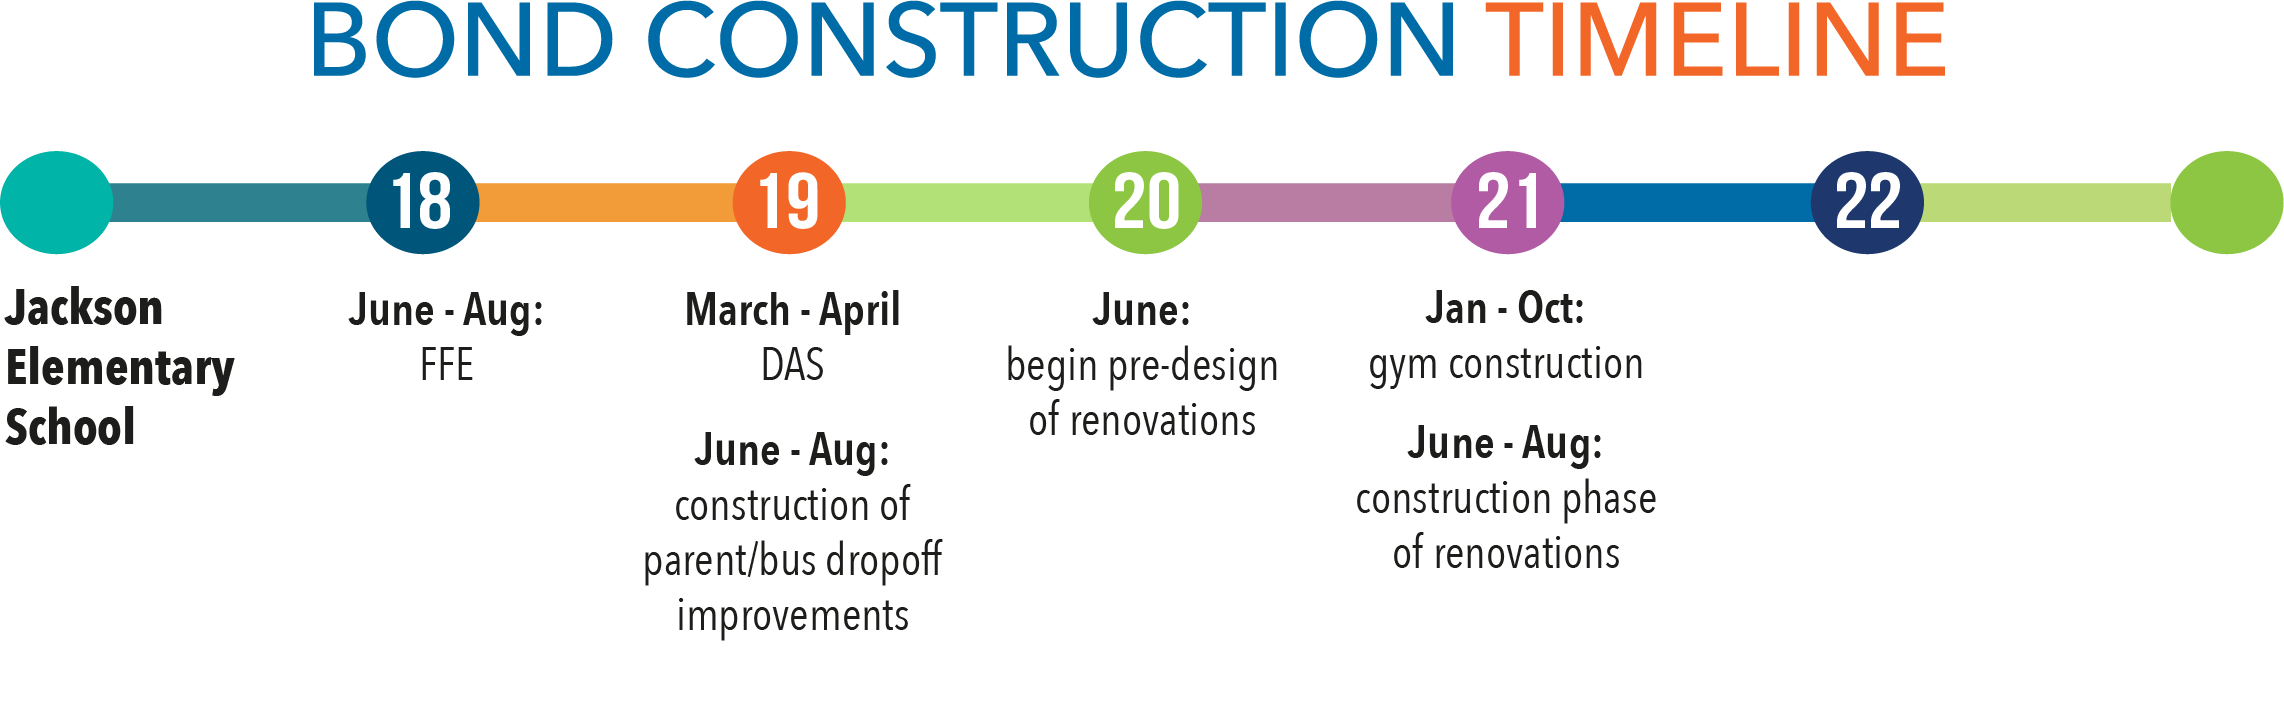 Bond construction timeline - Jackson